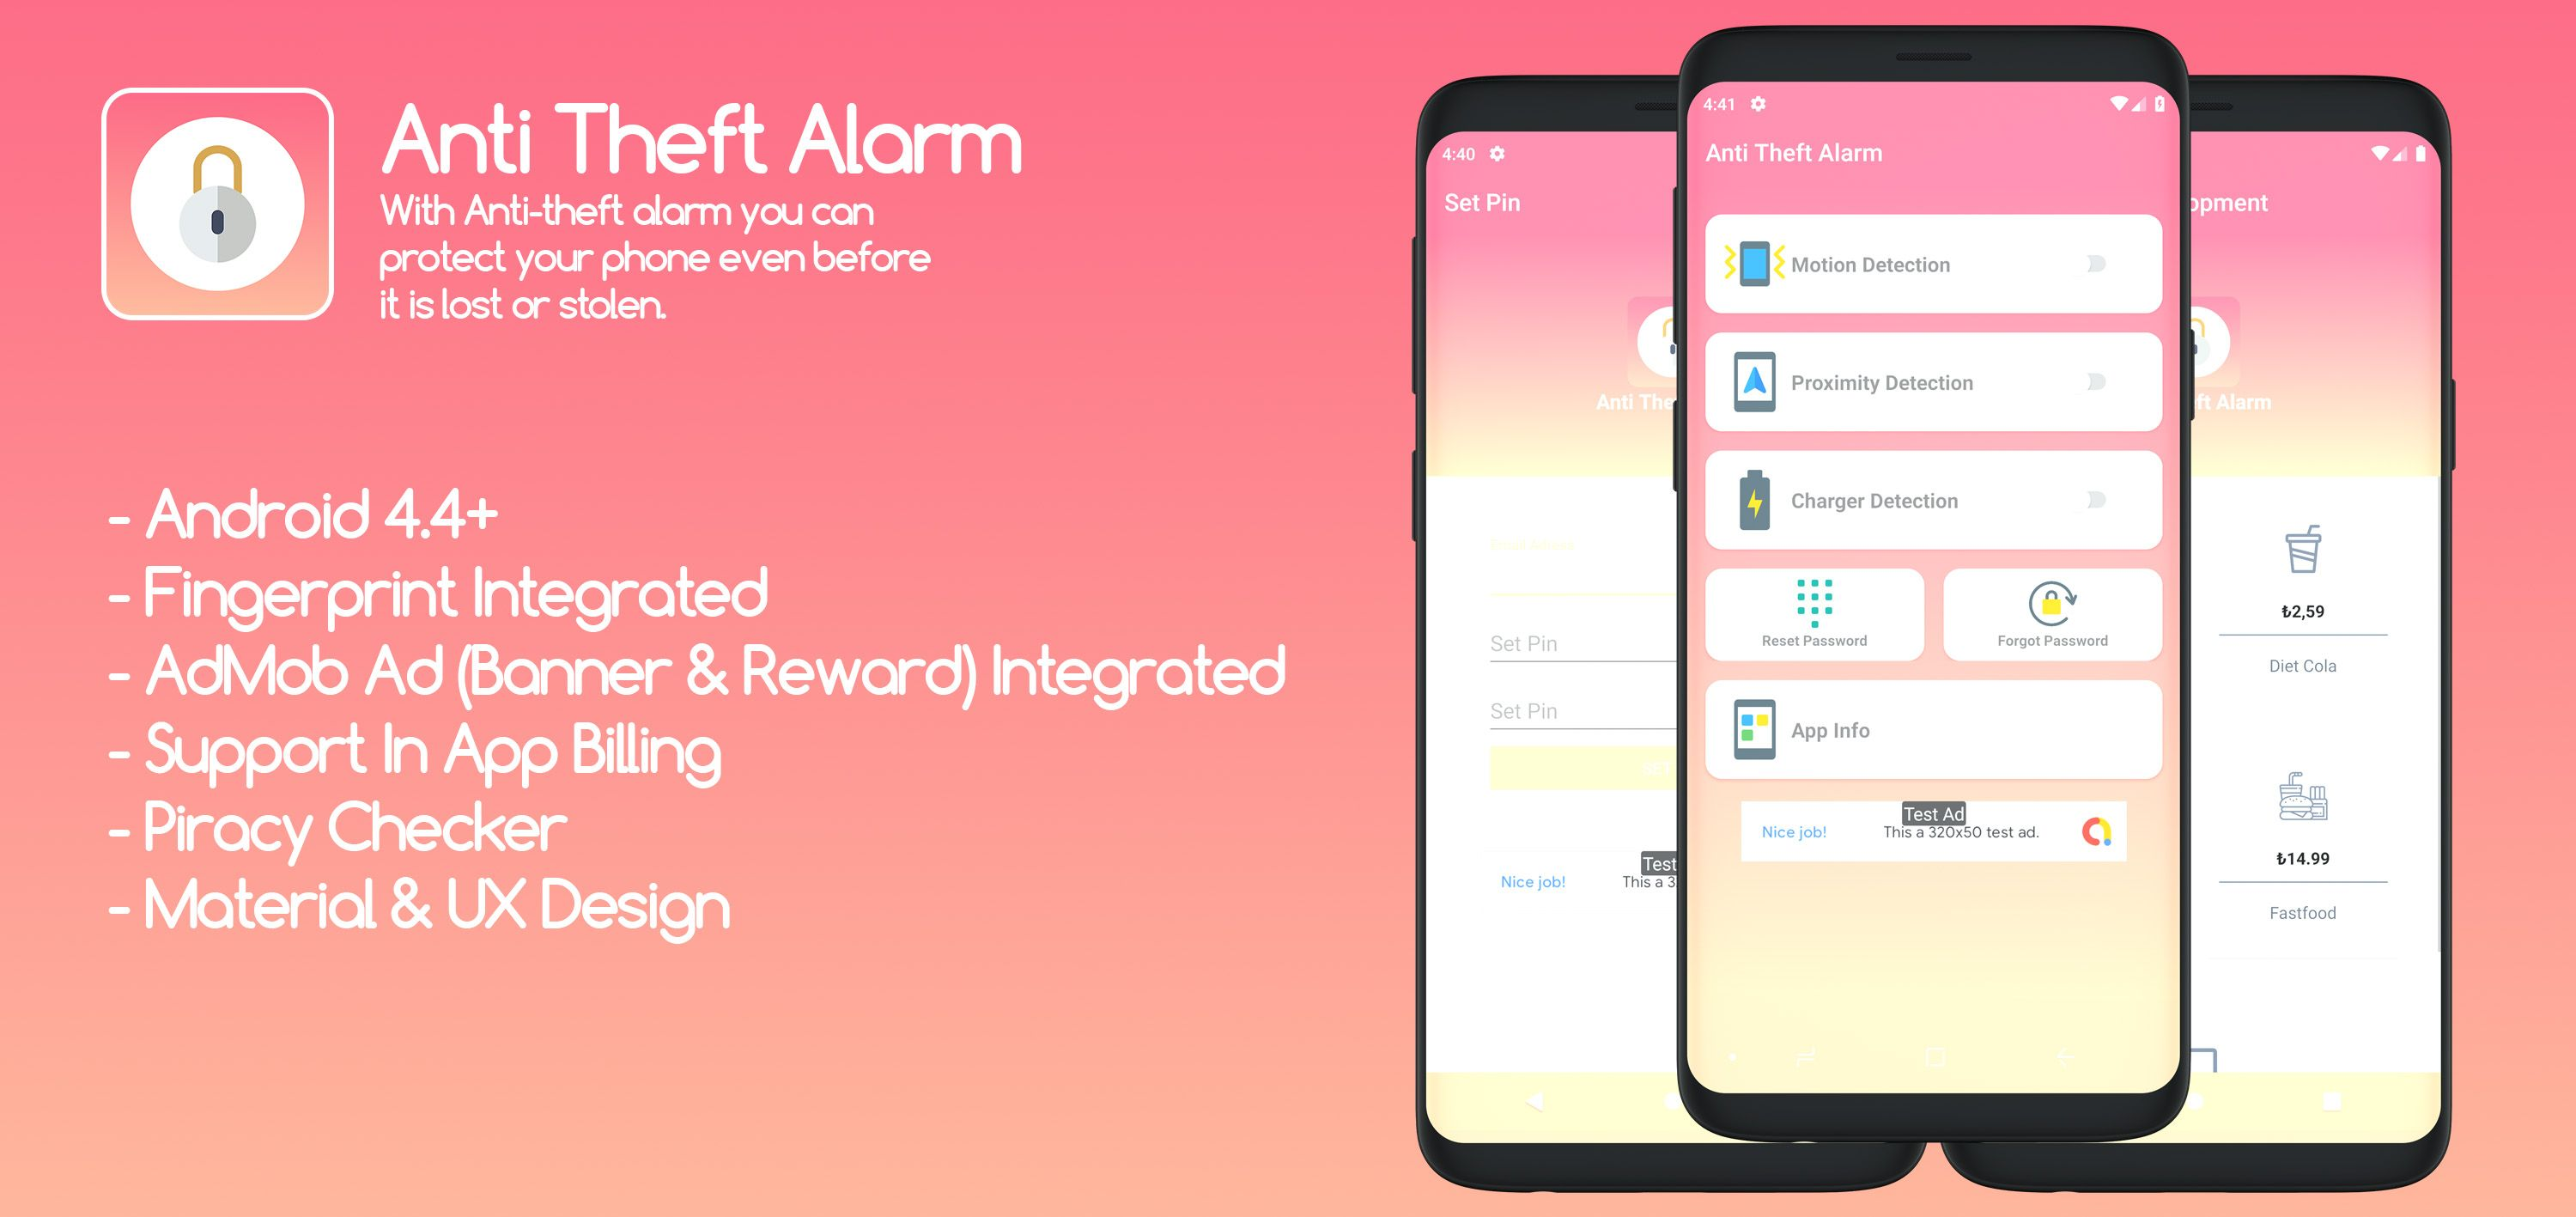 Anti Theft Alarm - Android Source Code Screenshot 1